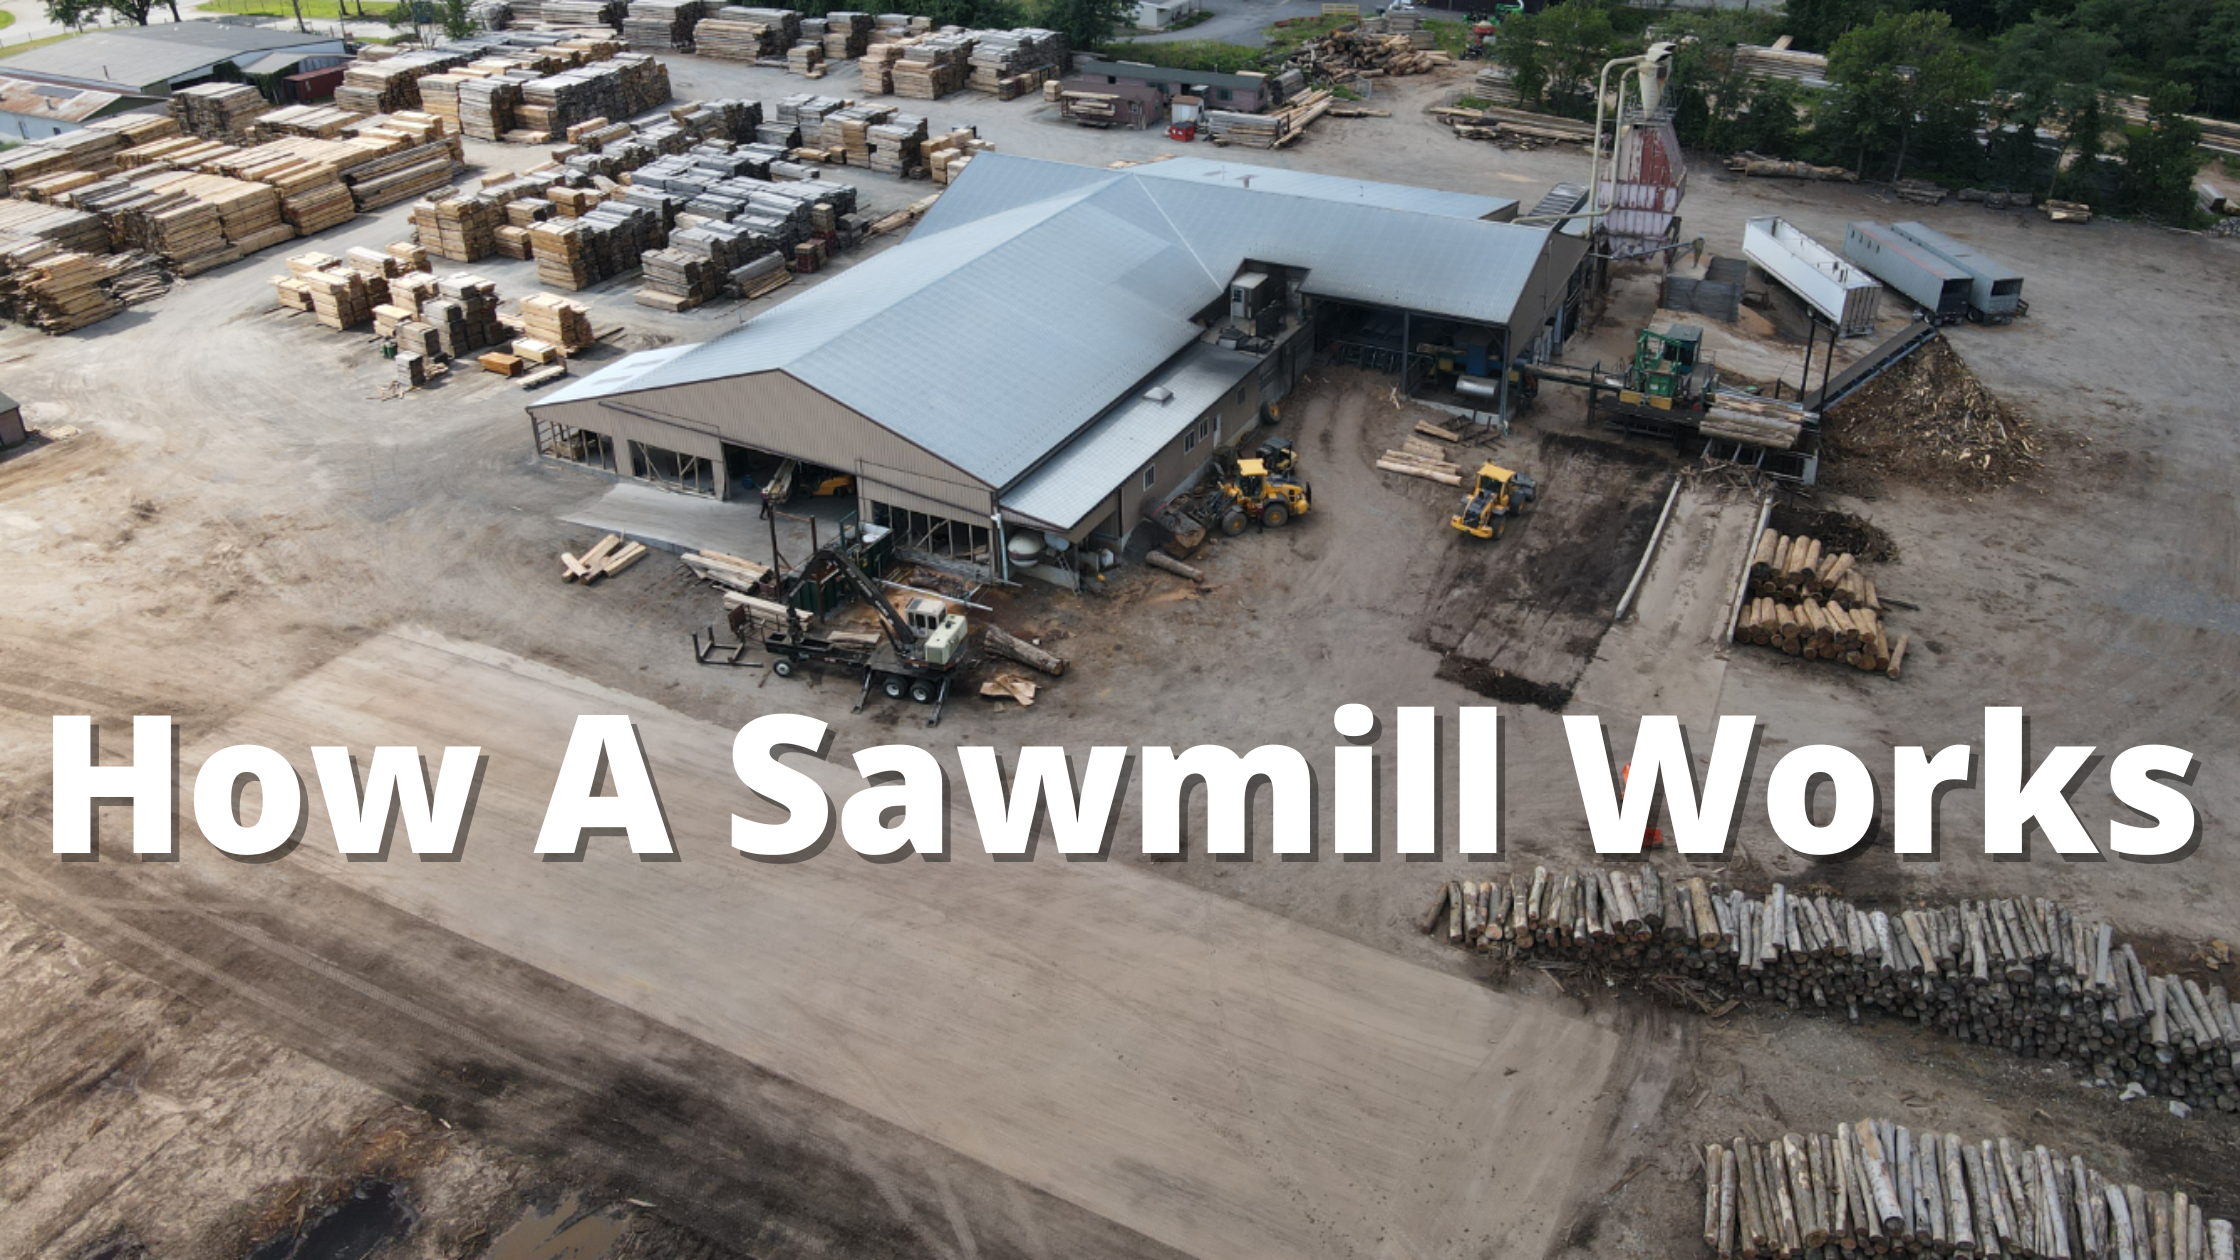 how a sawmill works banner